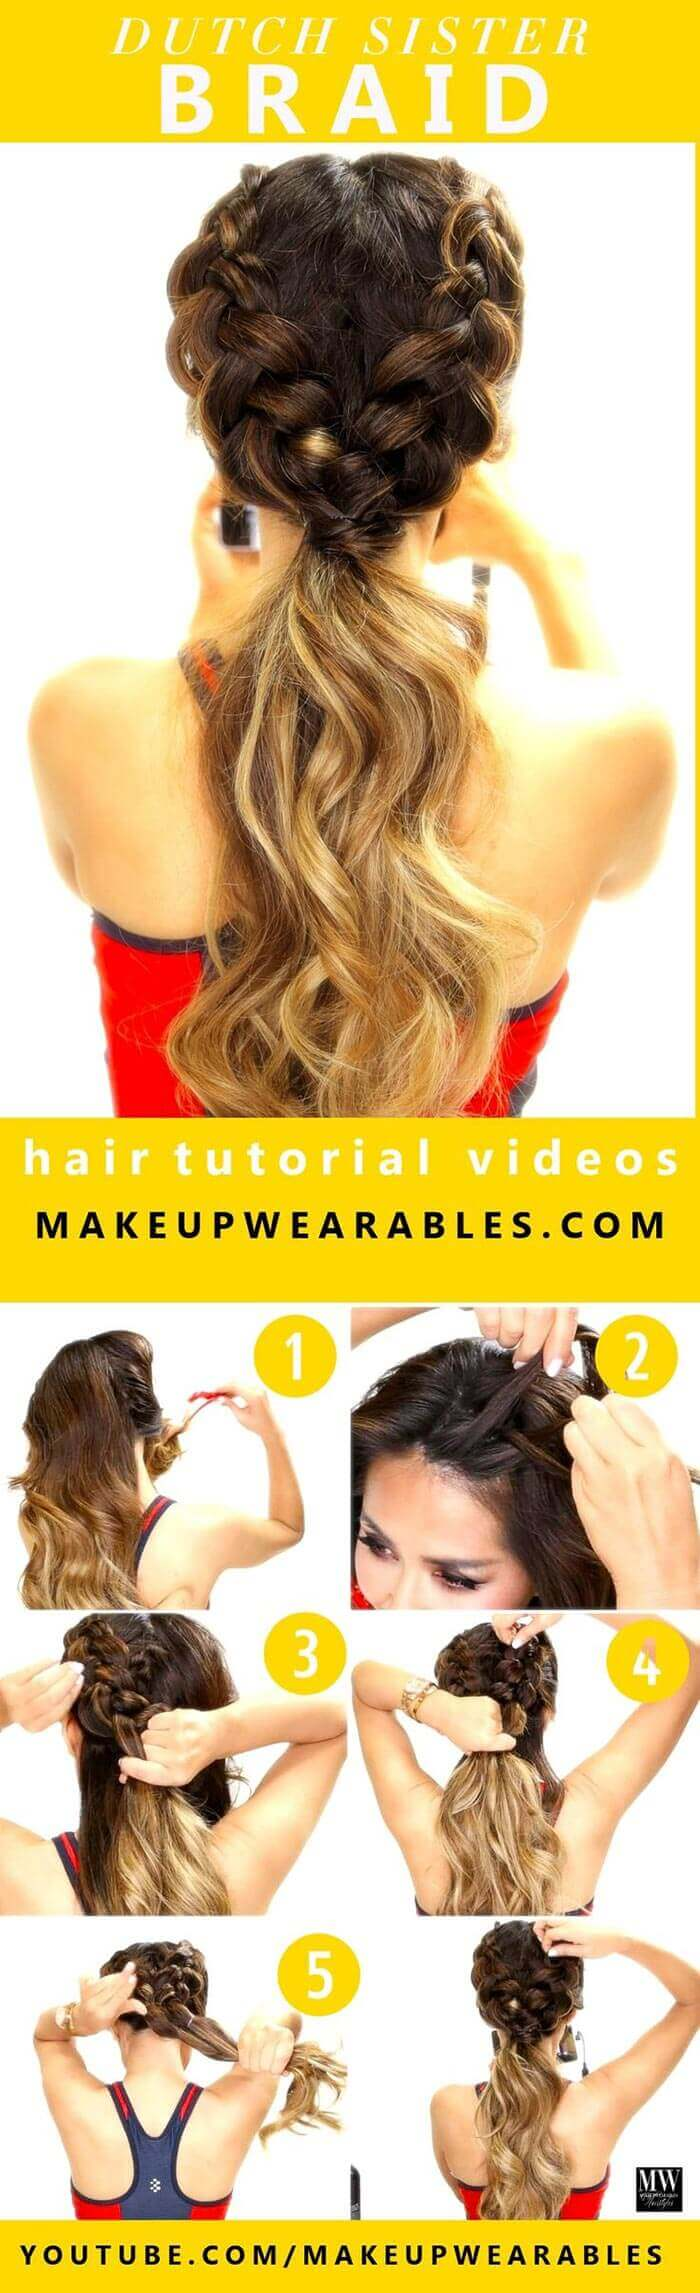 Dutch braid tutorial